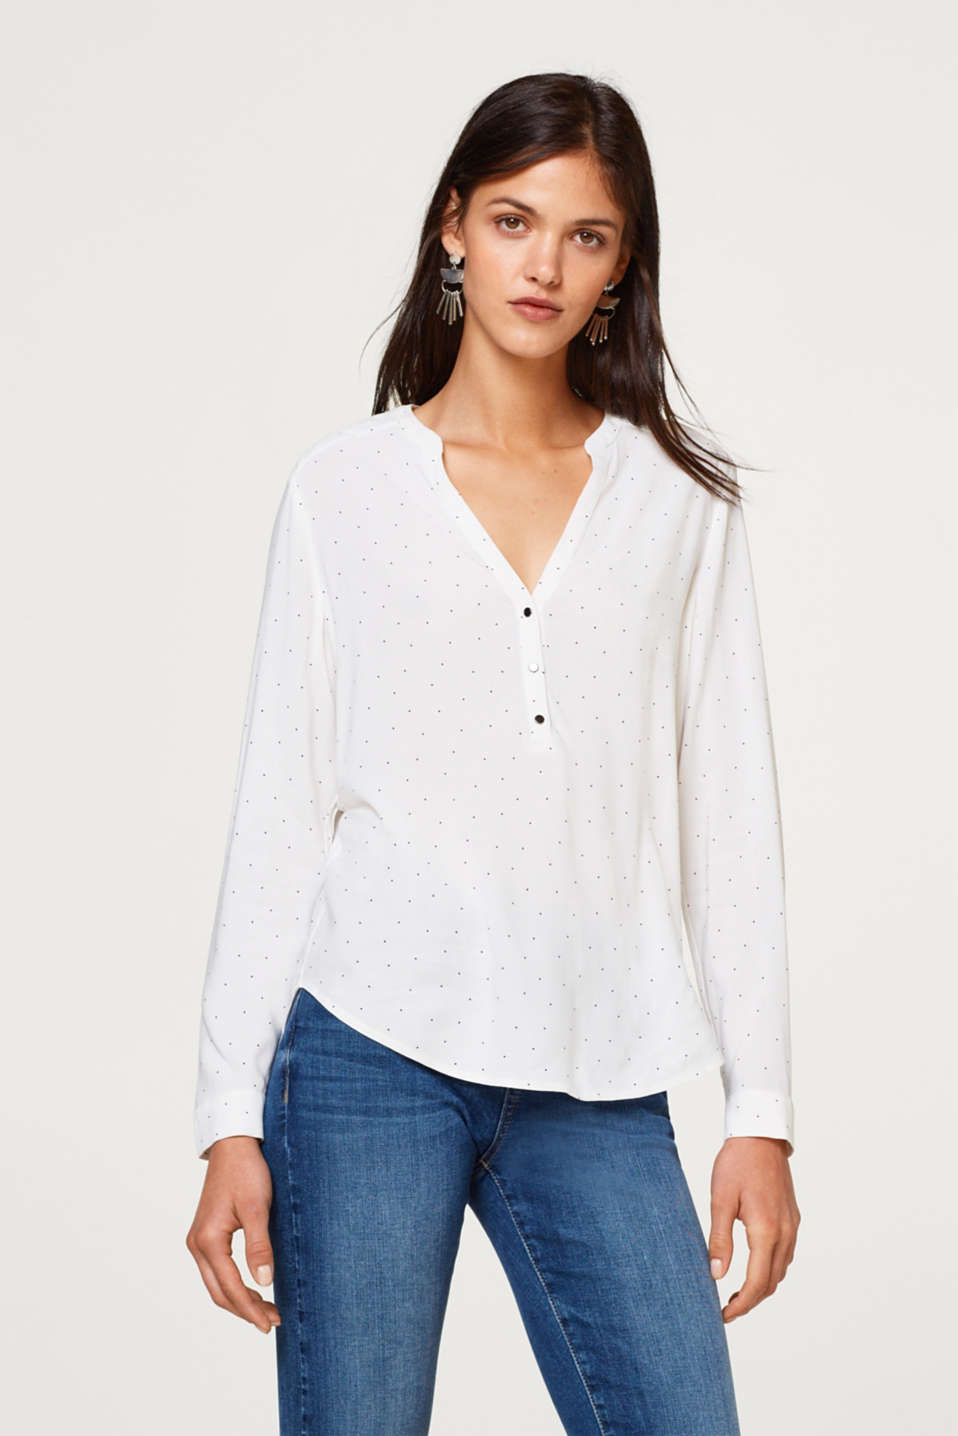 Esprit - Polka dot Henley blouse with quilted details